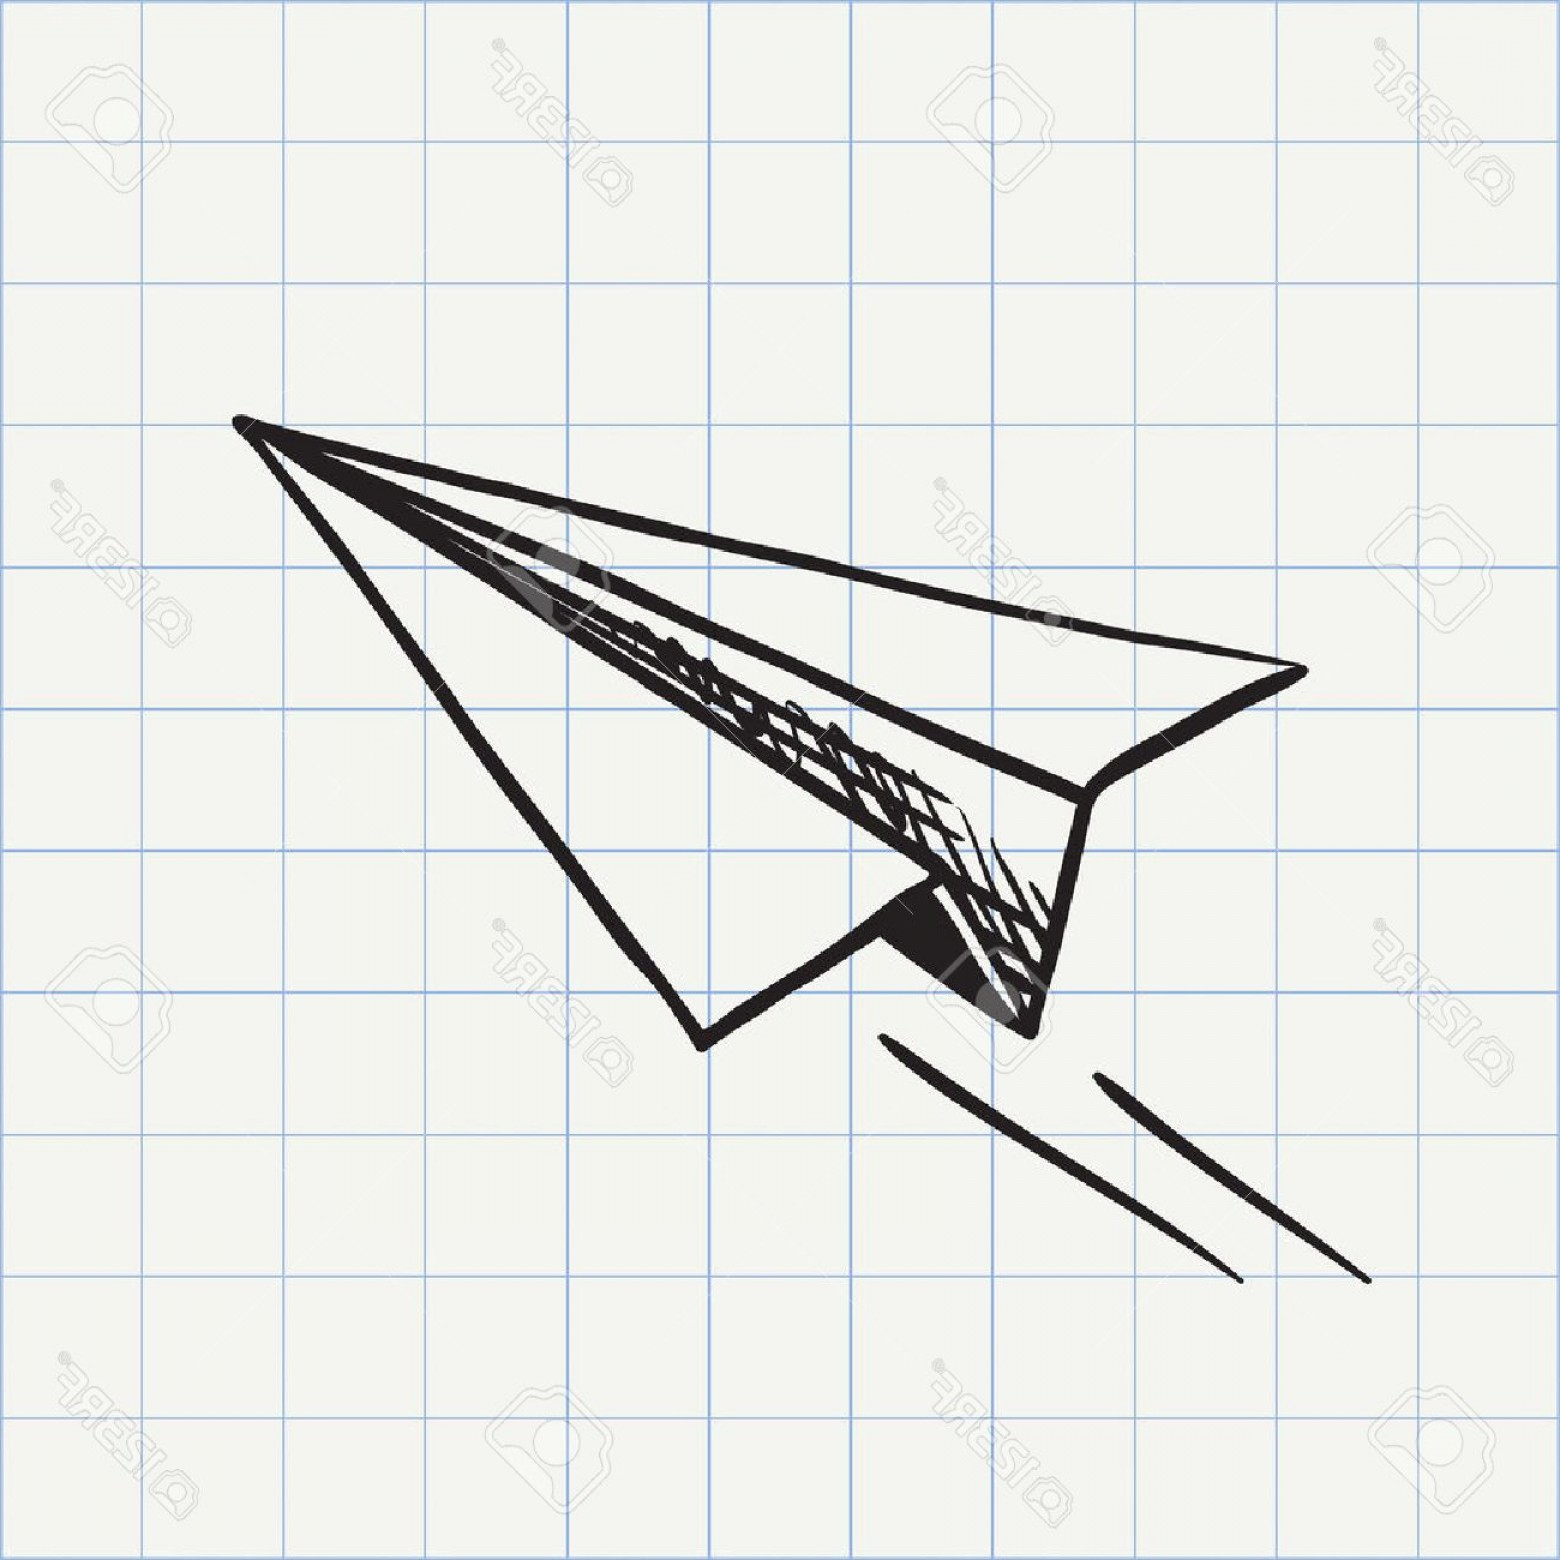 1560x1560 Photostock Vector Paper Plane Doodle Icon Hand Drawn Sketch